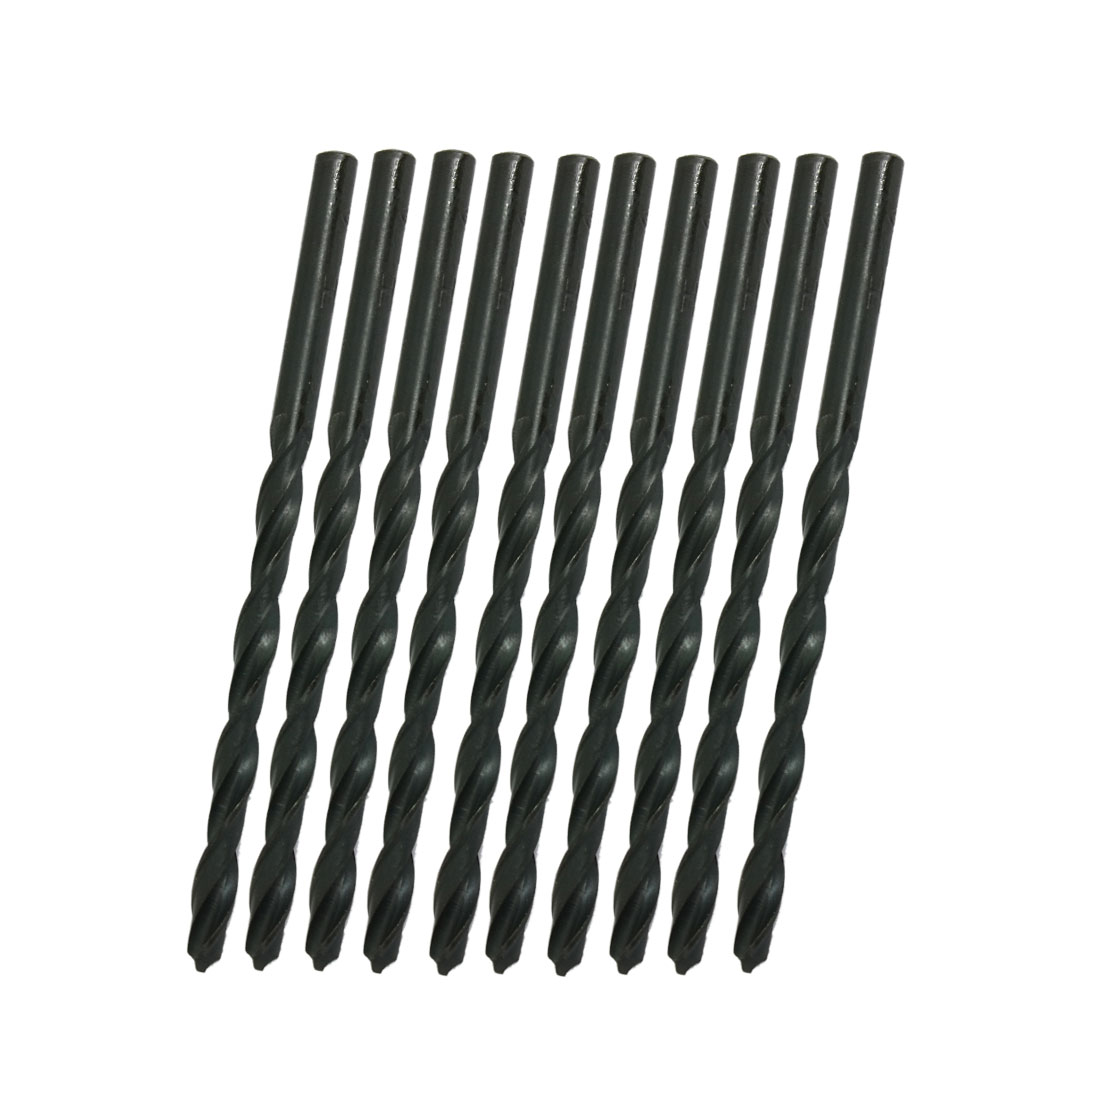 10 Pcs HSS High Speed Steel Straight Shank Twist Drill Bits 4mm